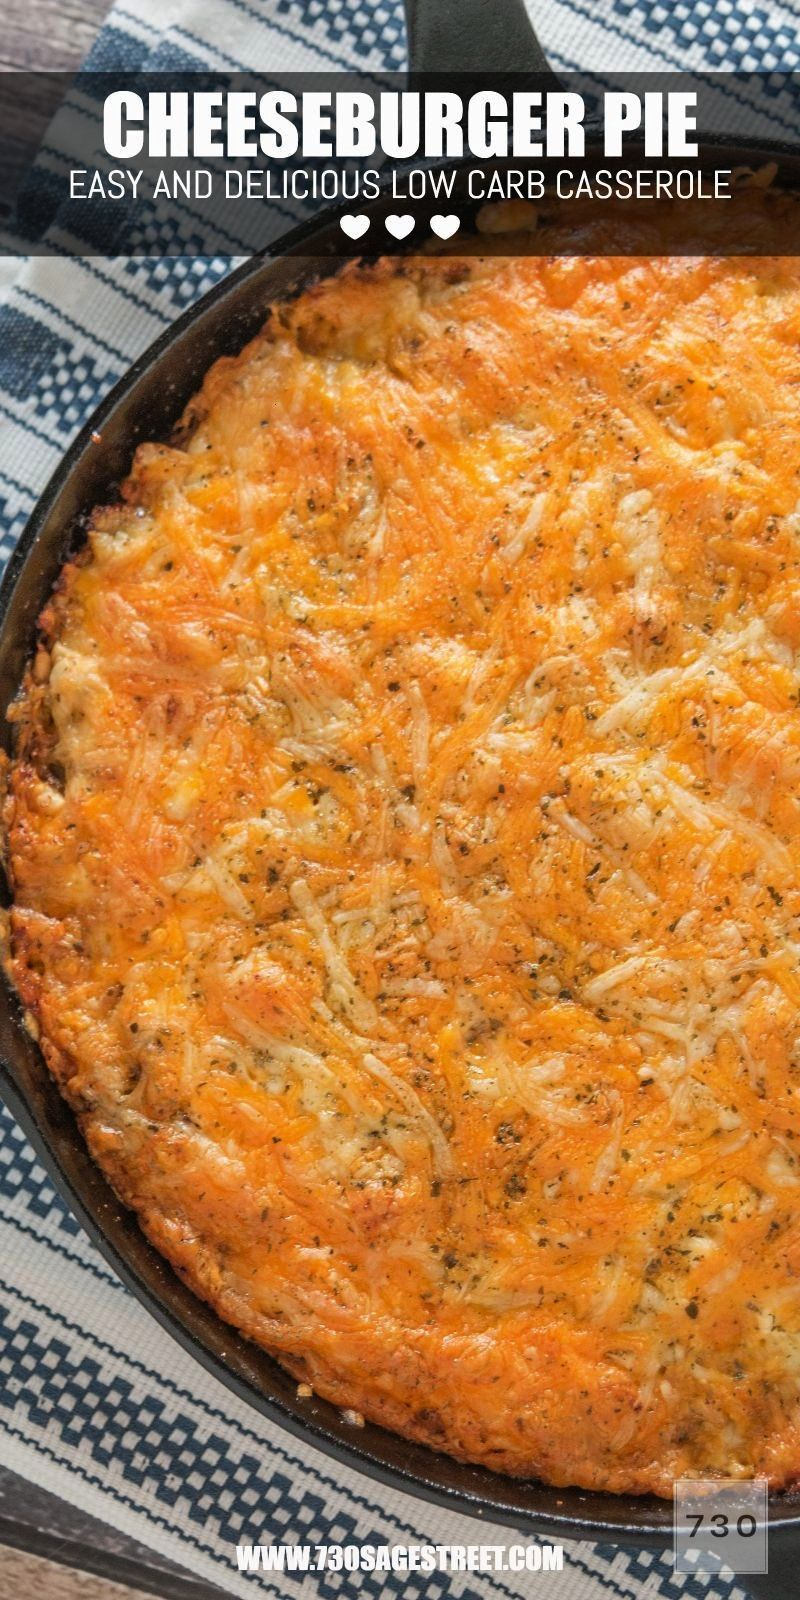 will love this low carb and keto friendly casserole that I call a cheeseburger pie! It's so good.Yo